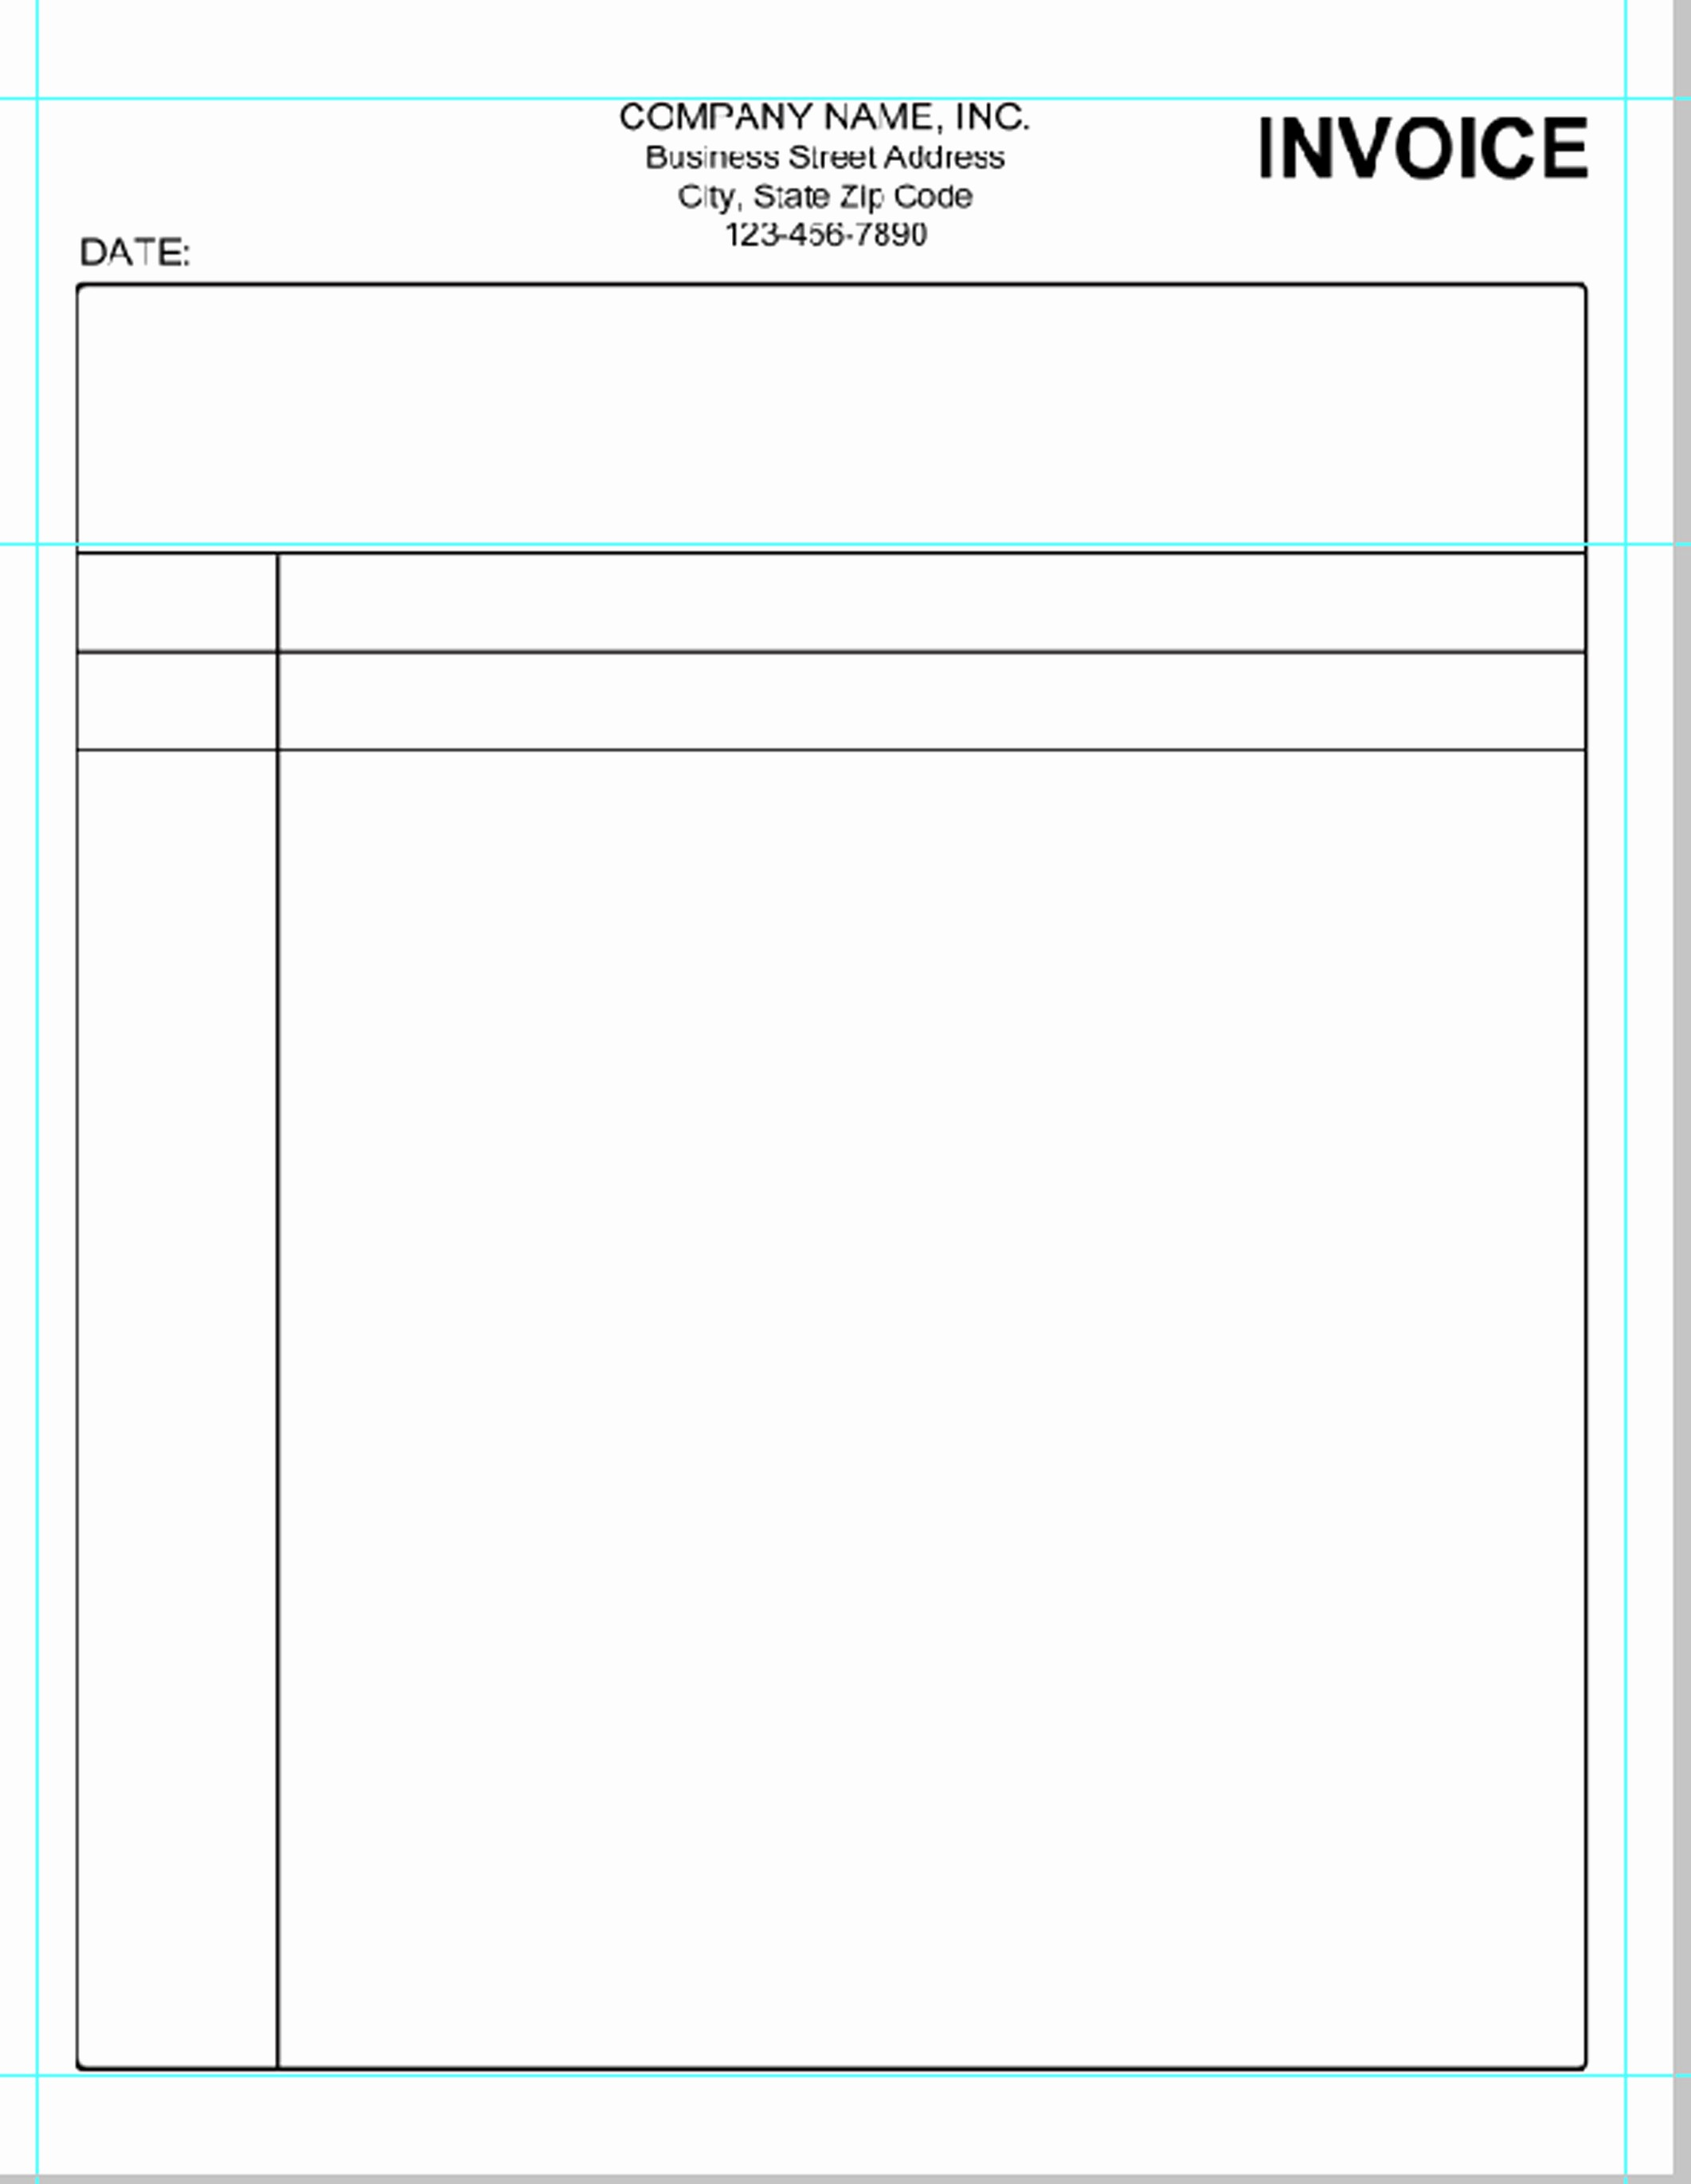 Create Invoice Template In Word New Simple Invoice Template Pdf